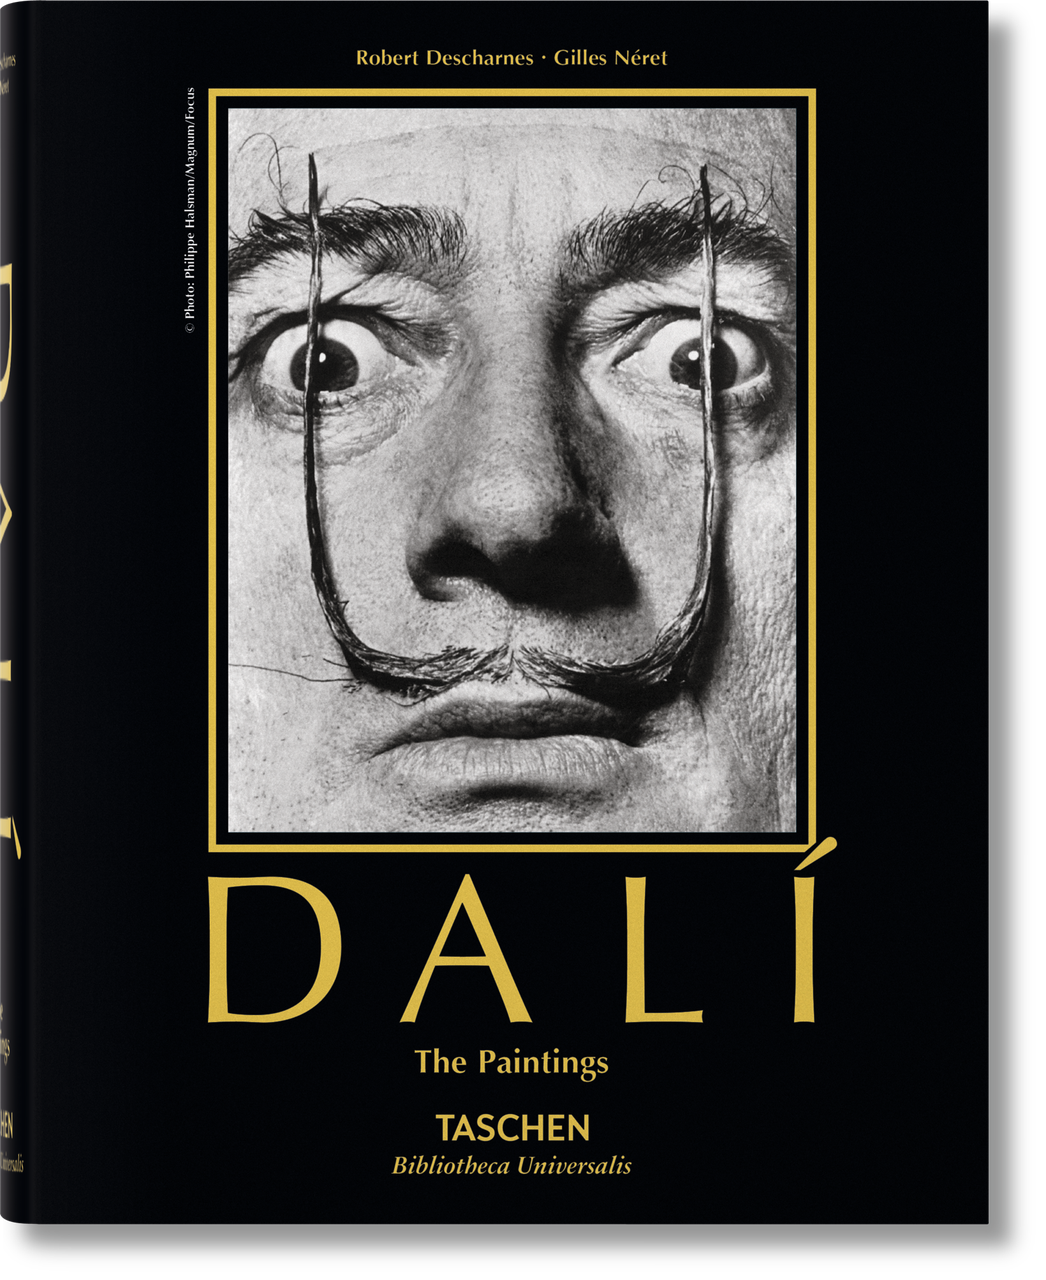 Dali. The Paintings. Robert Descharnes, Gilles Néret.